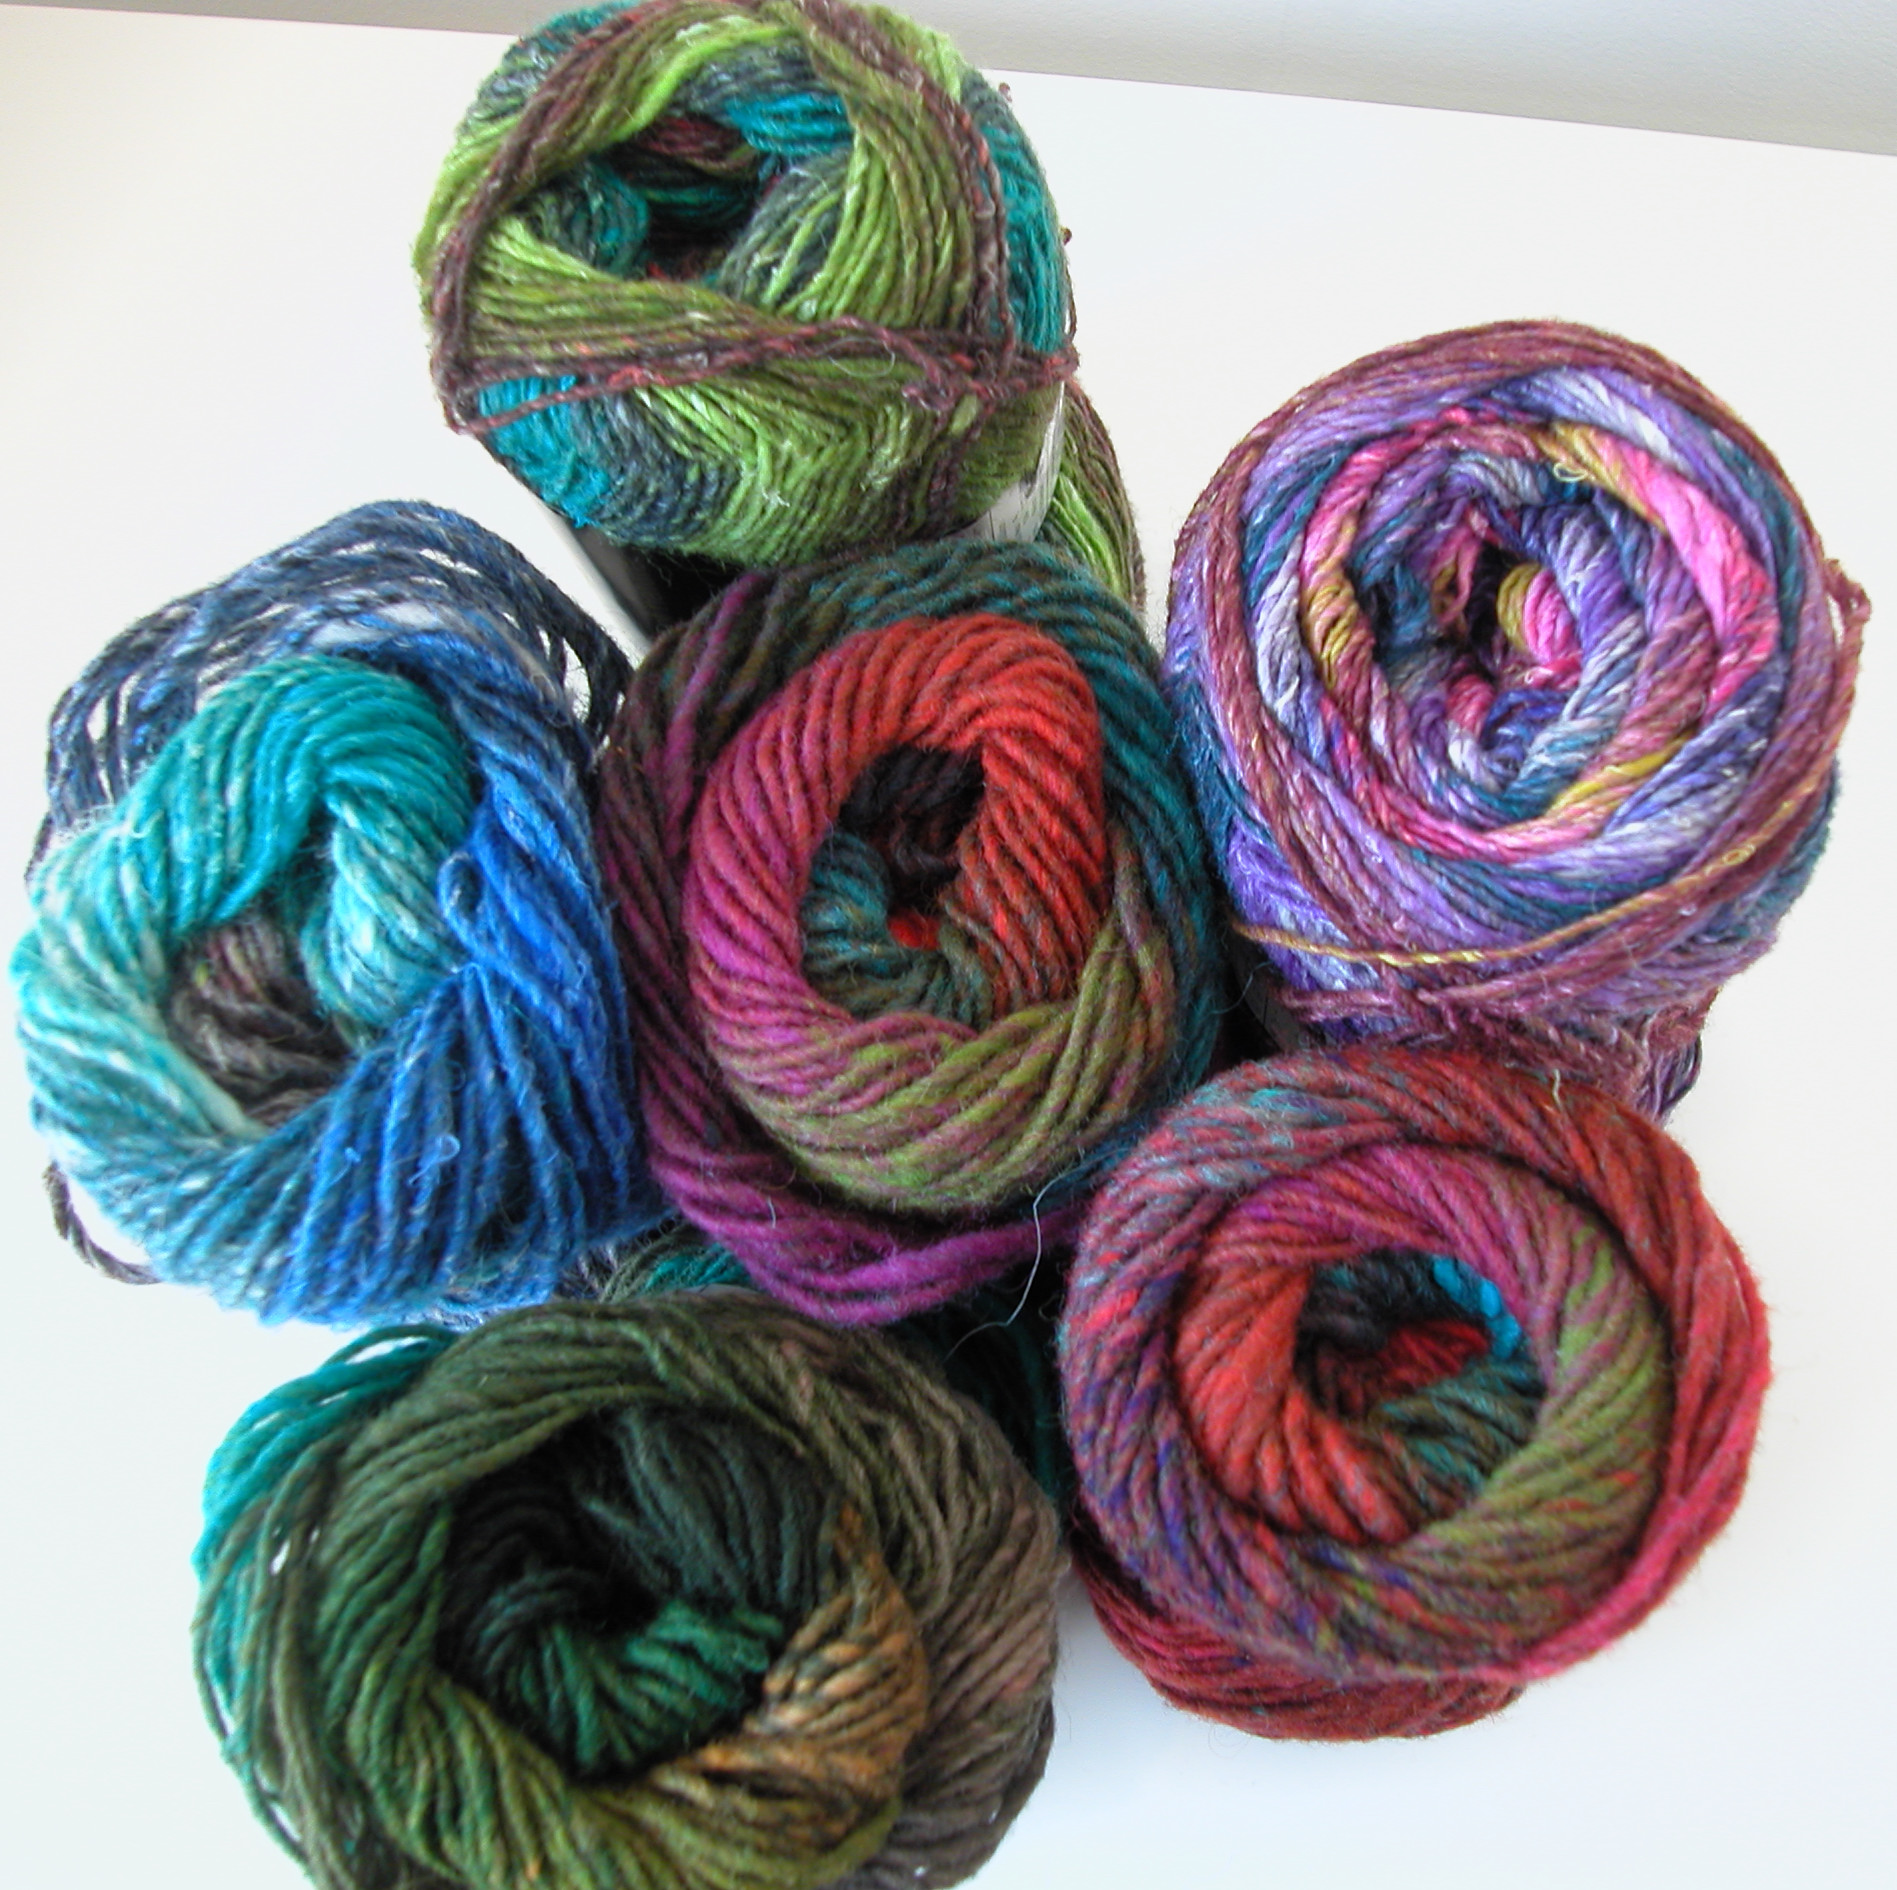 Noro Yarn Free Crochet Patterns : Noro Sock Yarn Free Patterns submited images Pic2Fly